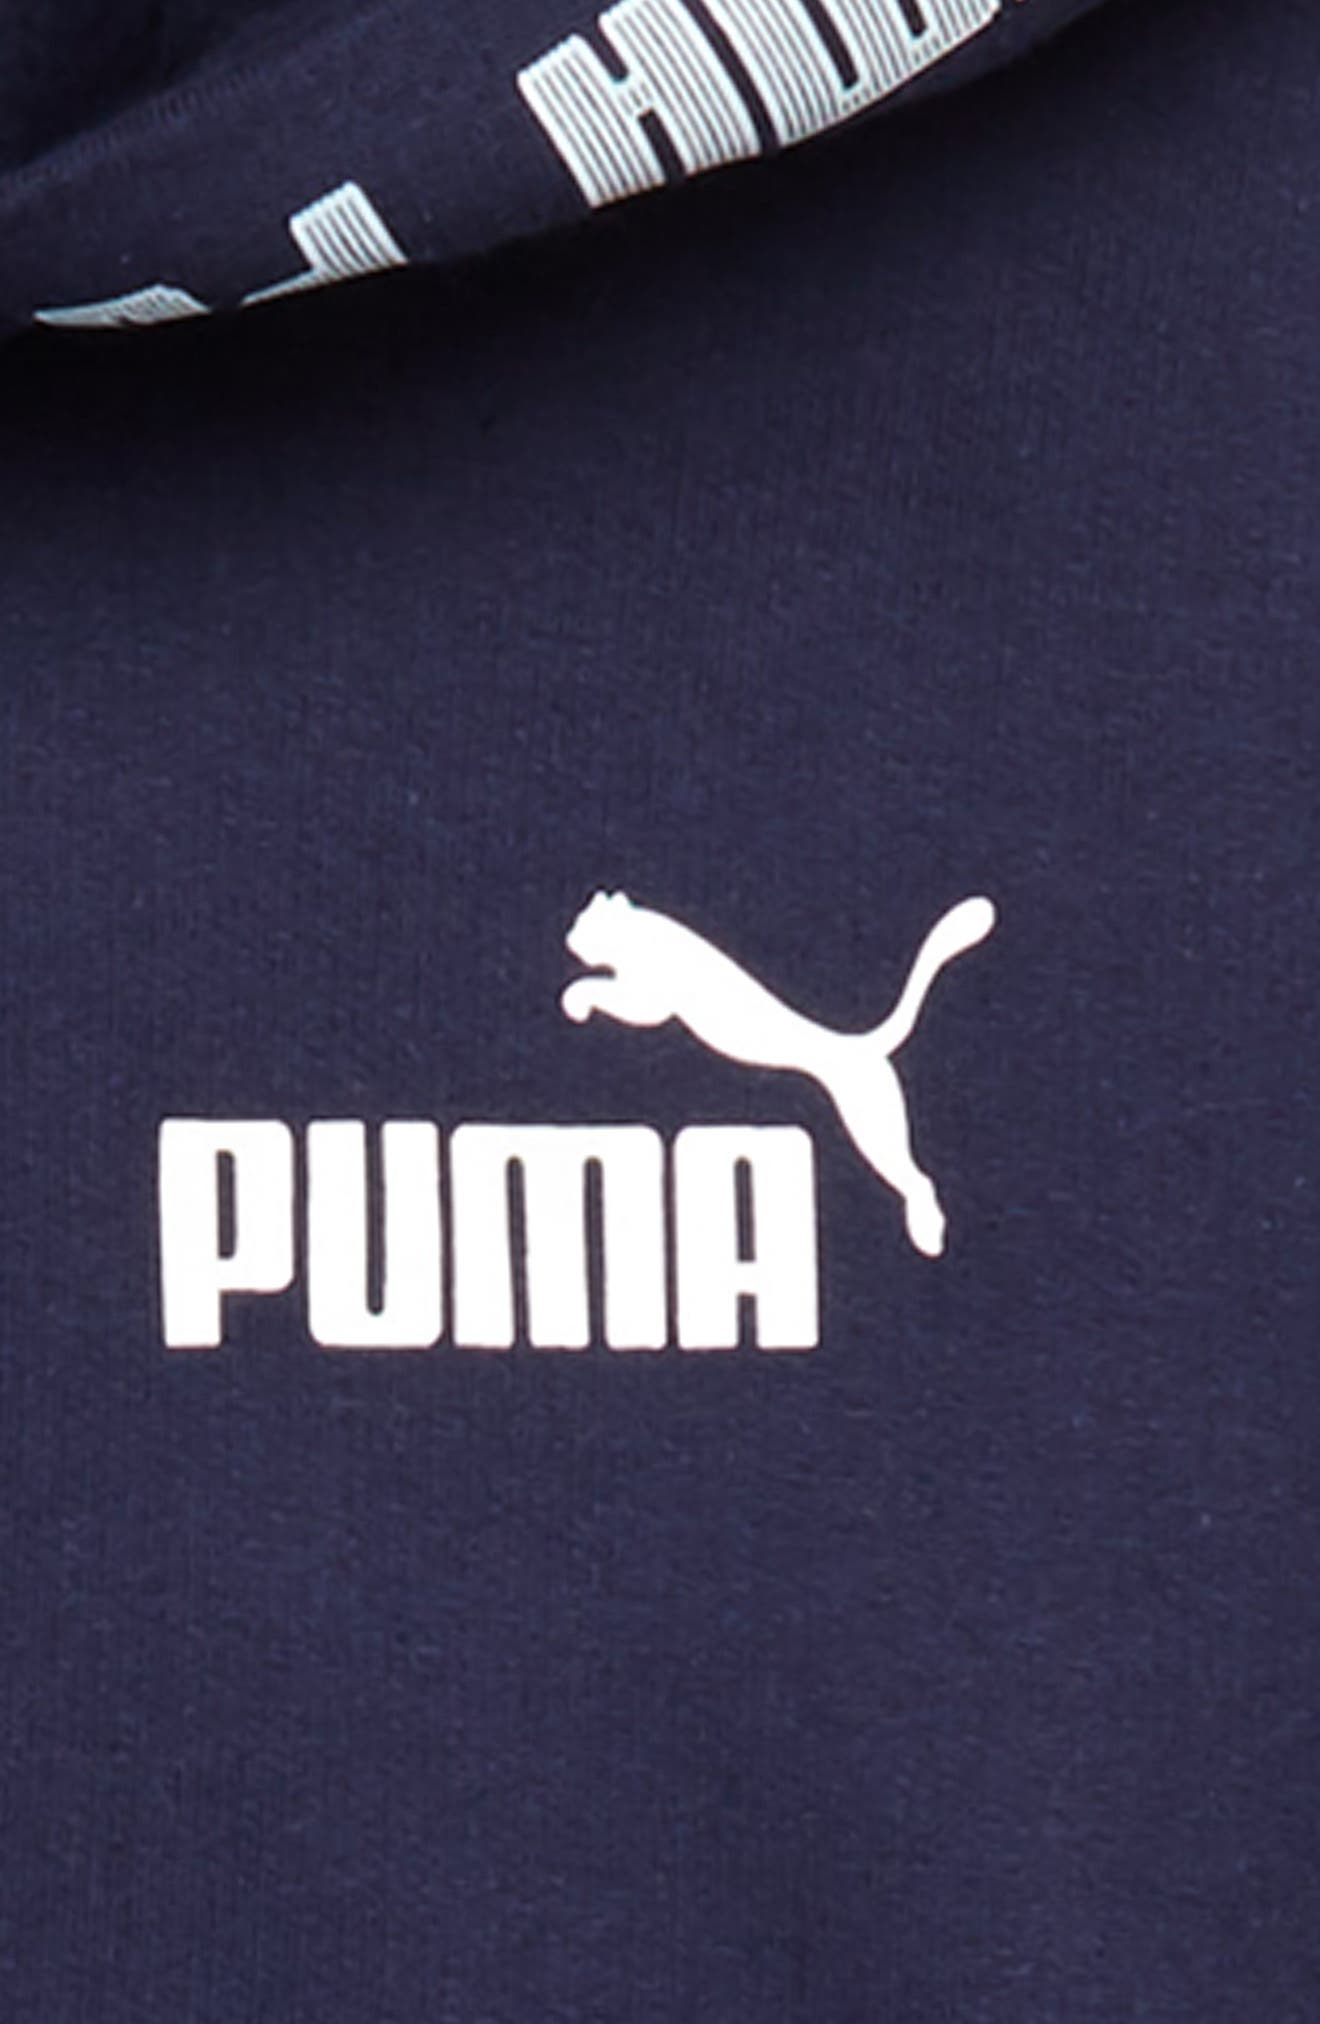 PUMA,                             Fleece Zip Hoodie,                             Alternate thumbnail 2, color,                             PEACOAT